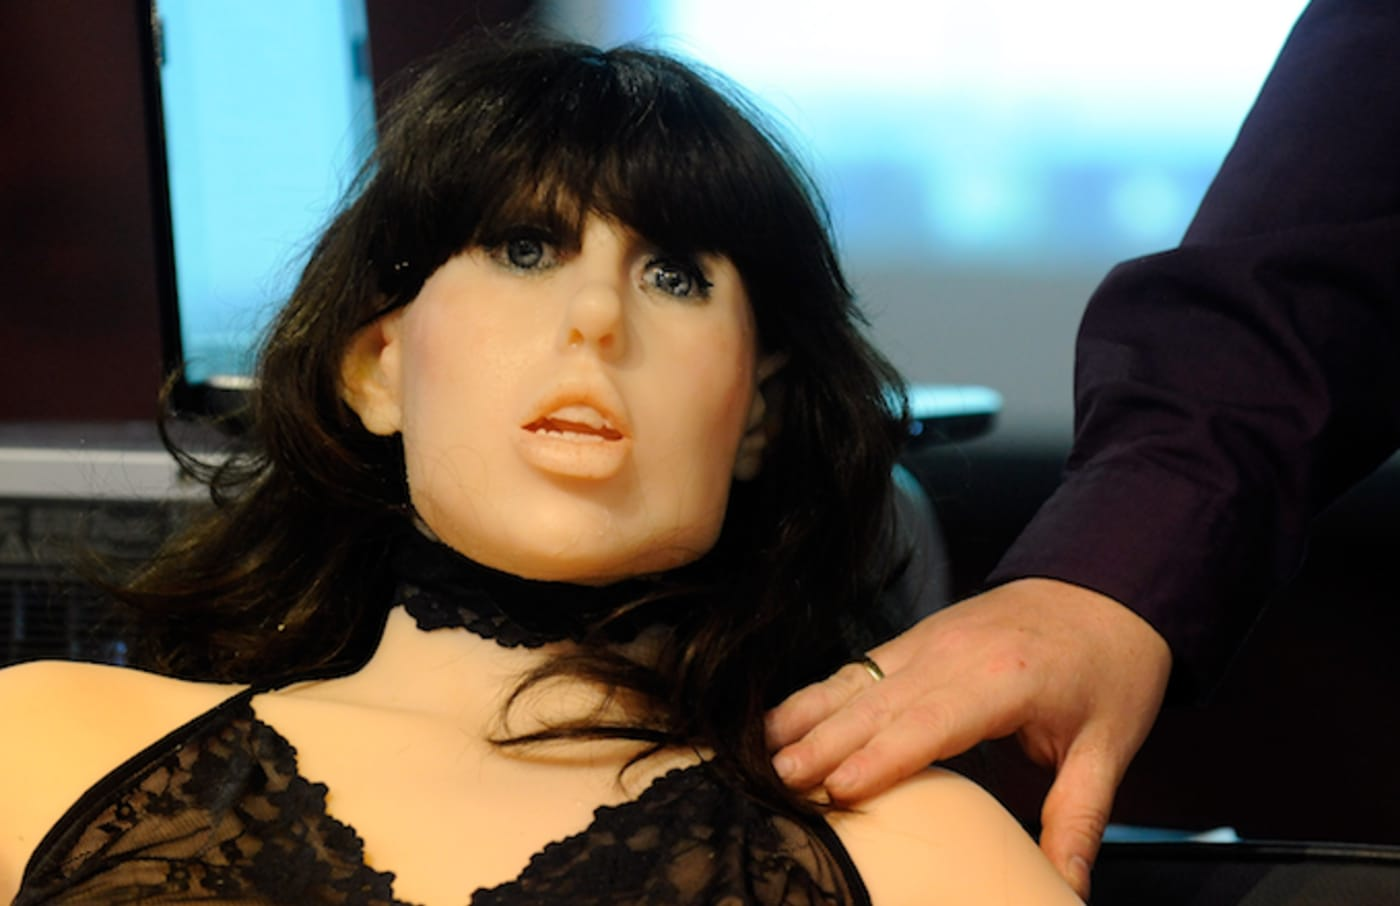 Sex doll that uses artificial intelligence.